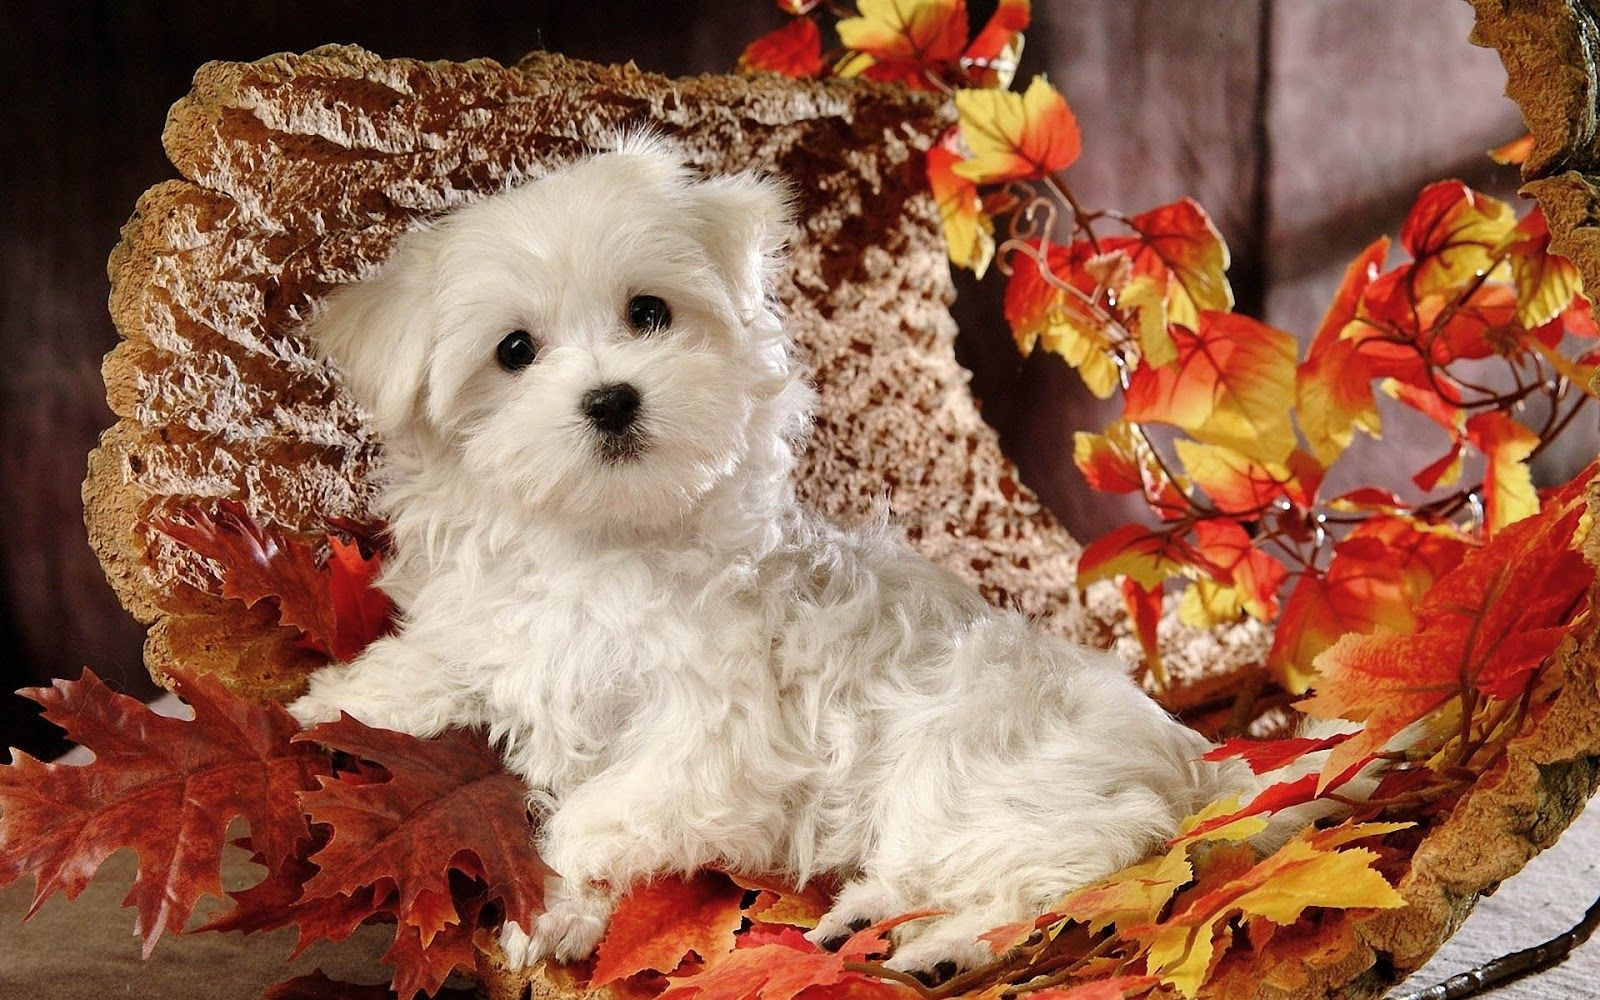 Hd Autumn Wallpaper With Cute Maltese Dog With Autumn Leaves Hd